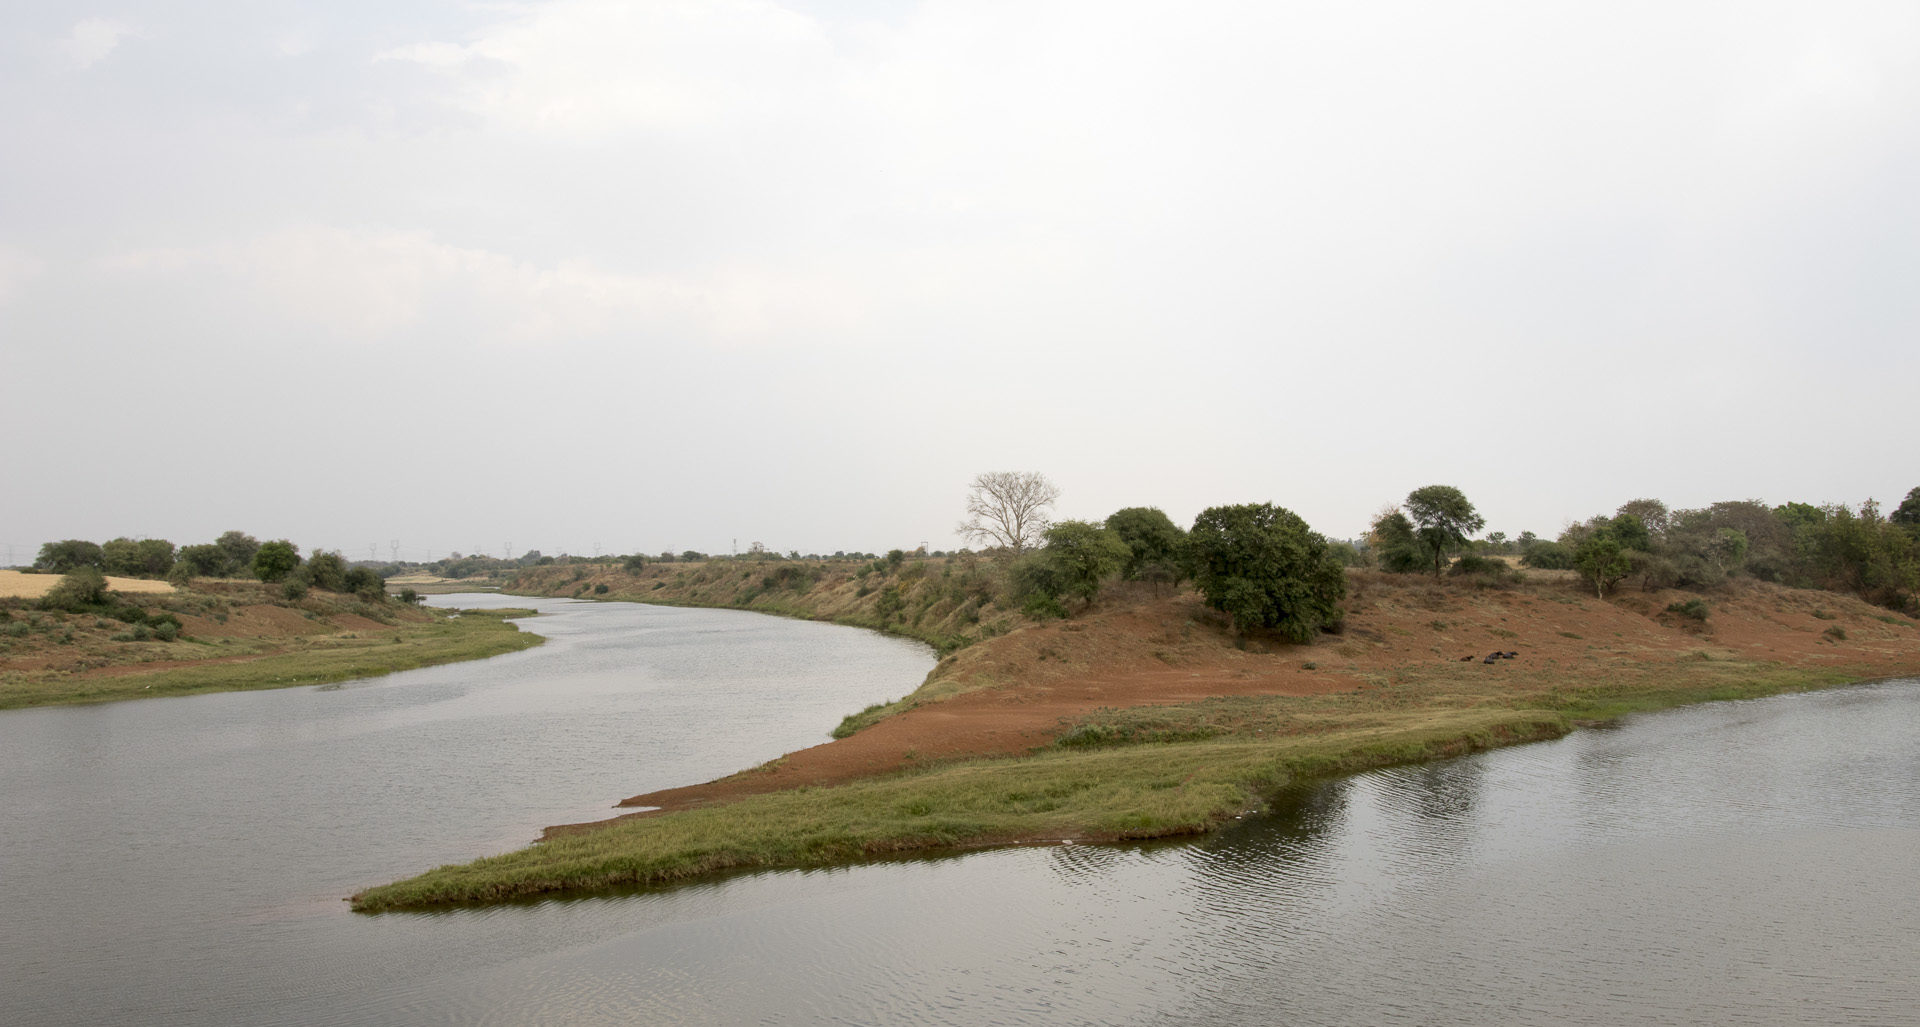 The confluence of Ken (left) and Patne (right) rivers. Photo by Siddharth Agarwal/Veditum.